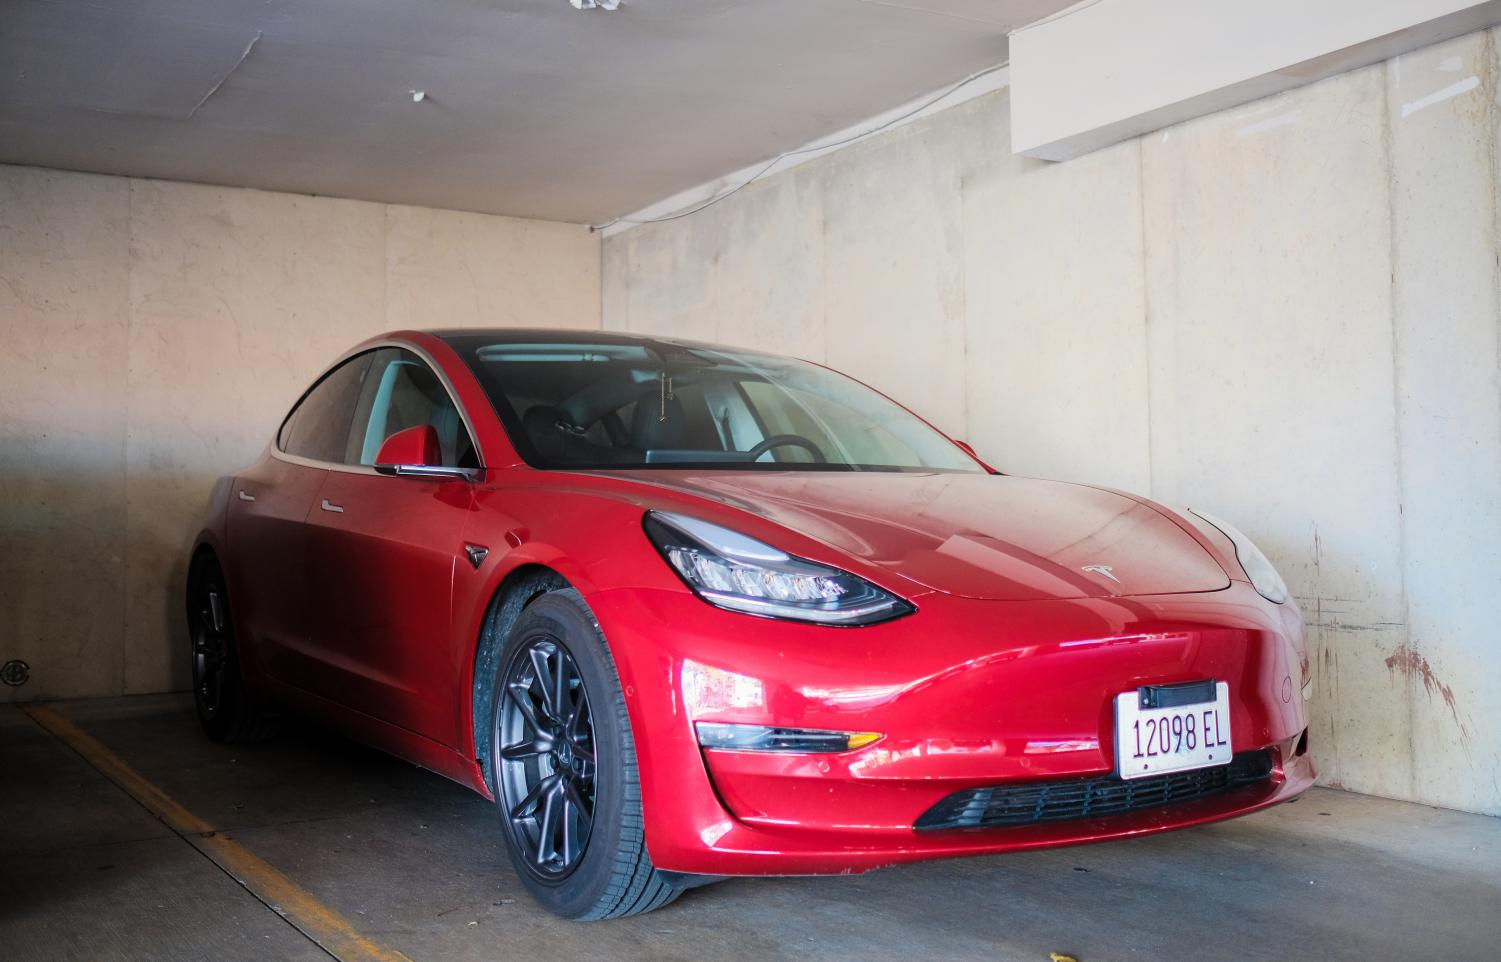 A Tesla Model 3 sits in a parking lot in Urbana. Researchers at the University are trying to improve the safety of self-driving cars.